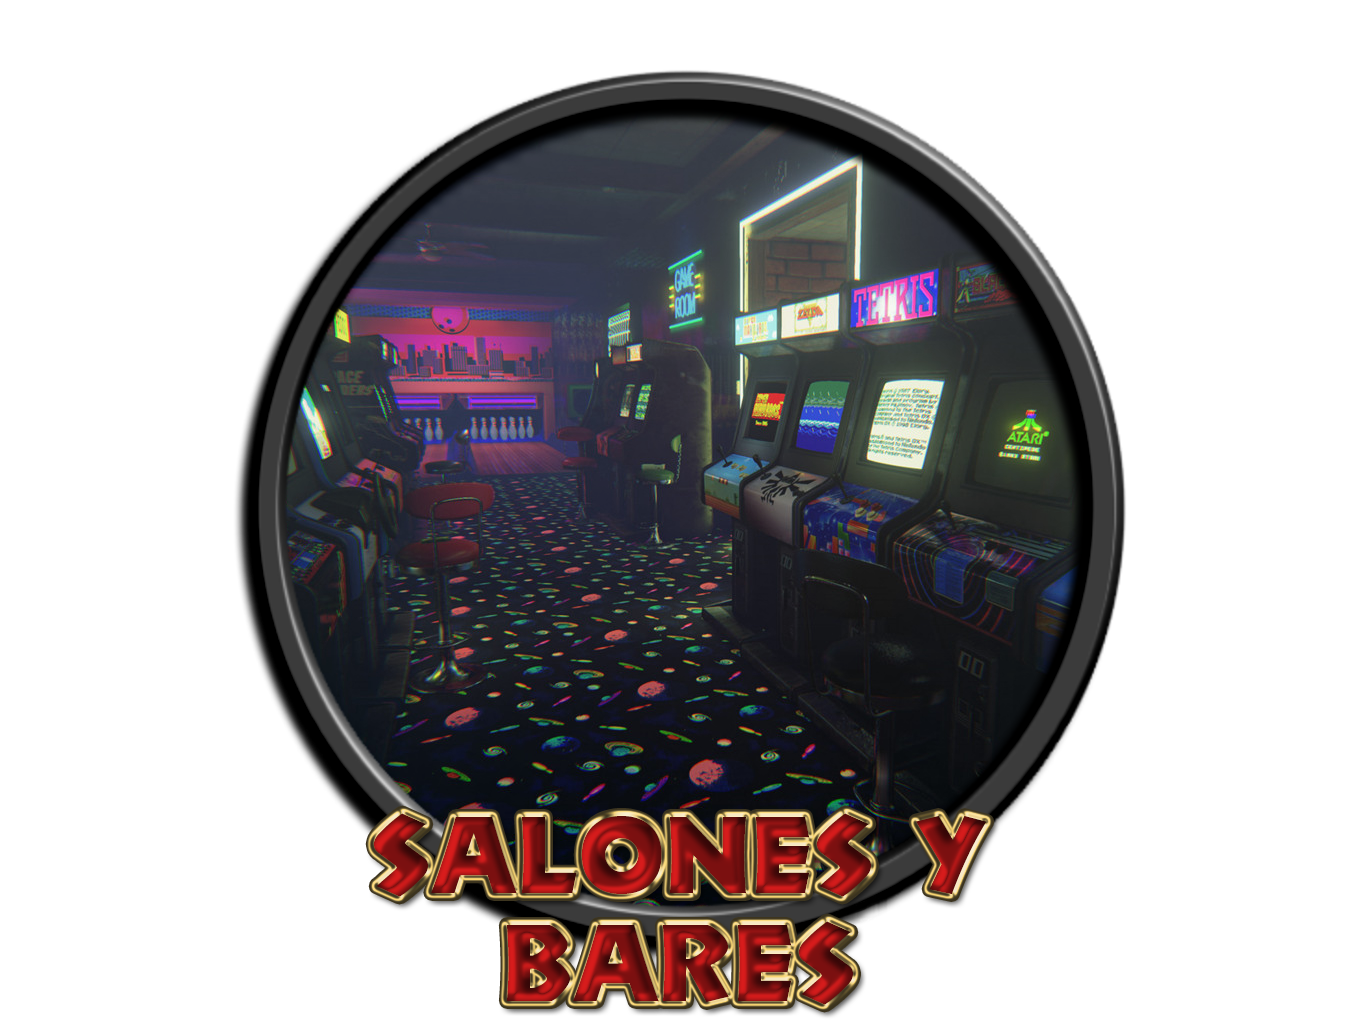 Salones recreativos y bares con máquinas.